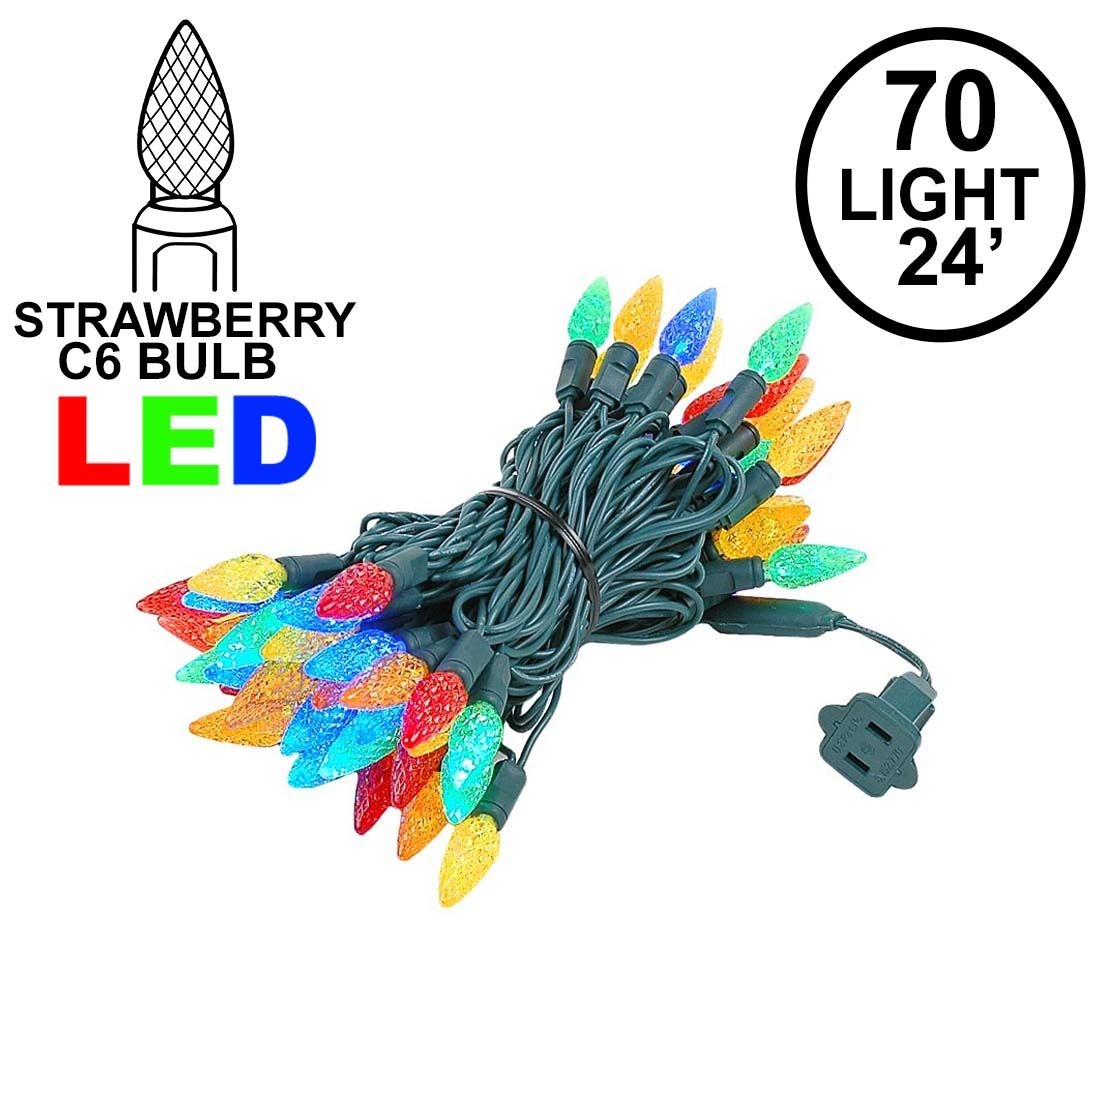 3ab10251759f Picture of Multi 70 LED C6 Strawberry Mini Lights Commercial Grade on Green  Wire